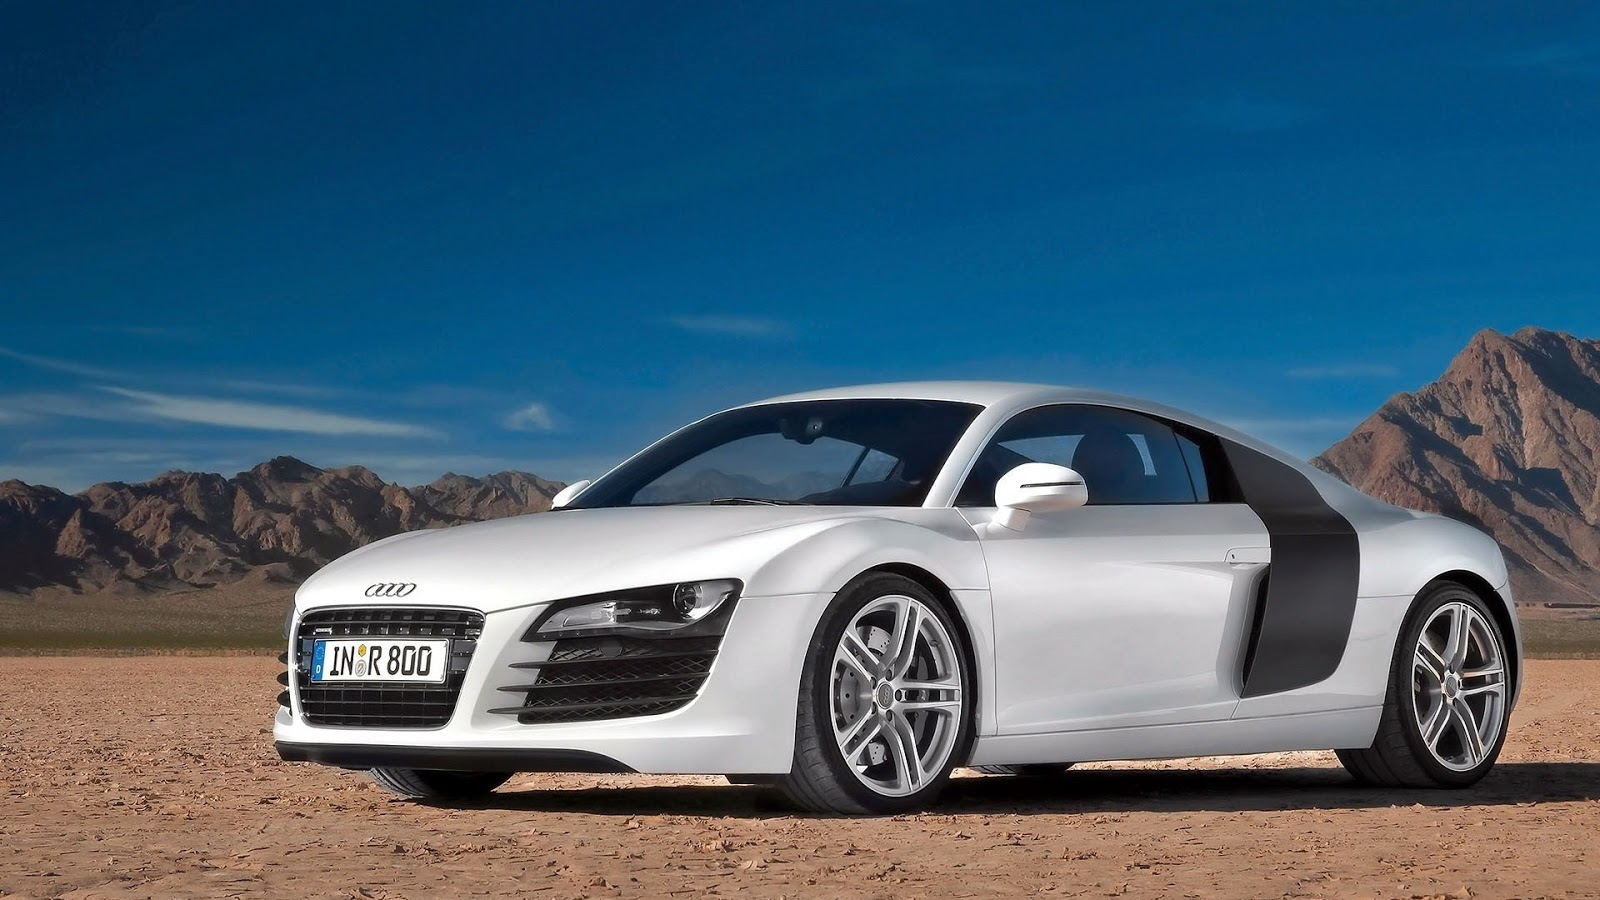 Car Wallpapers Backgrounds Hd: Top 27 Most Beautiful And Dashing AUDI CAR Wallpapers In HD